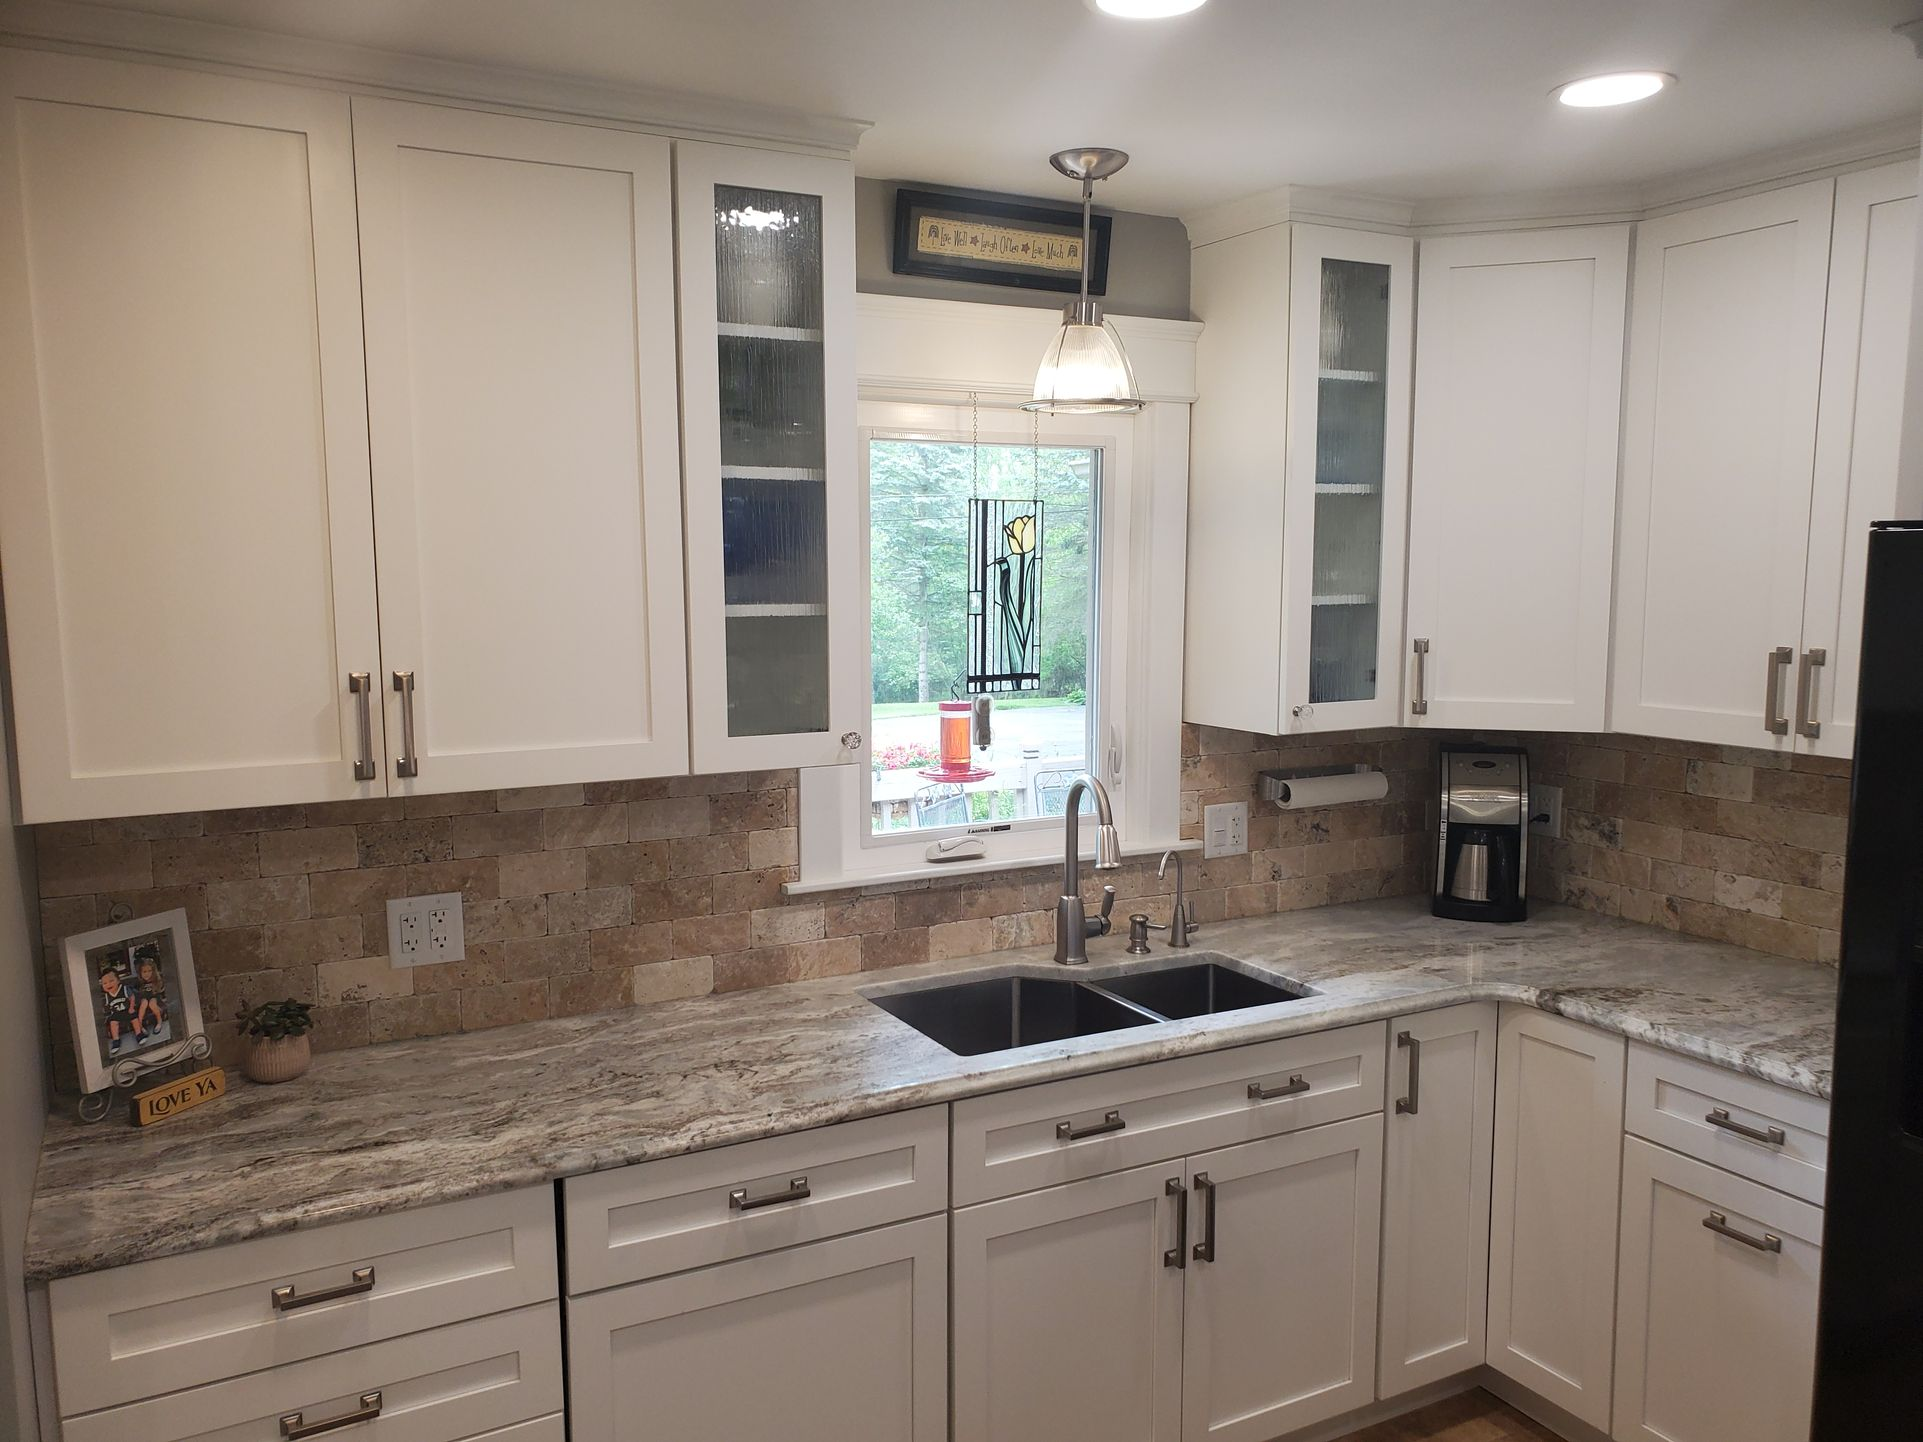 David Harney Kitchen Cabinets Renovation Sunset Ln Antioch IL